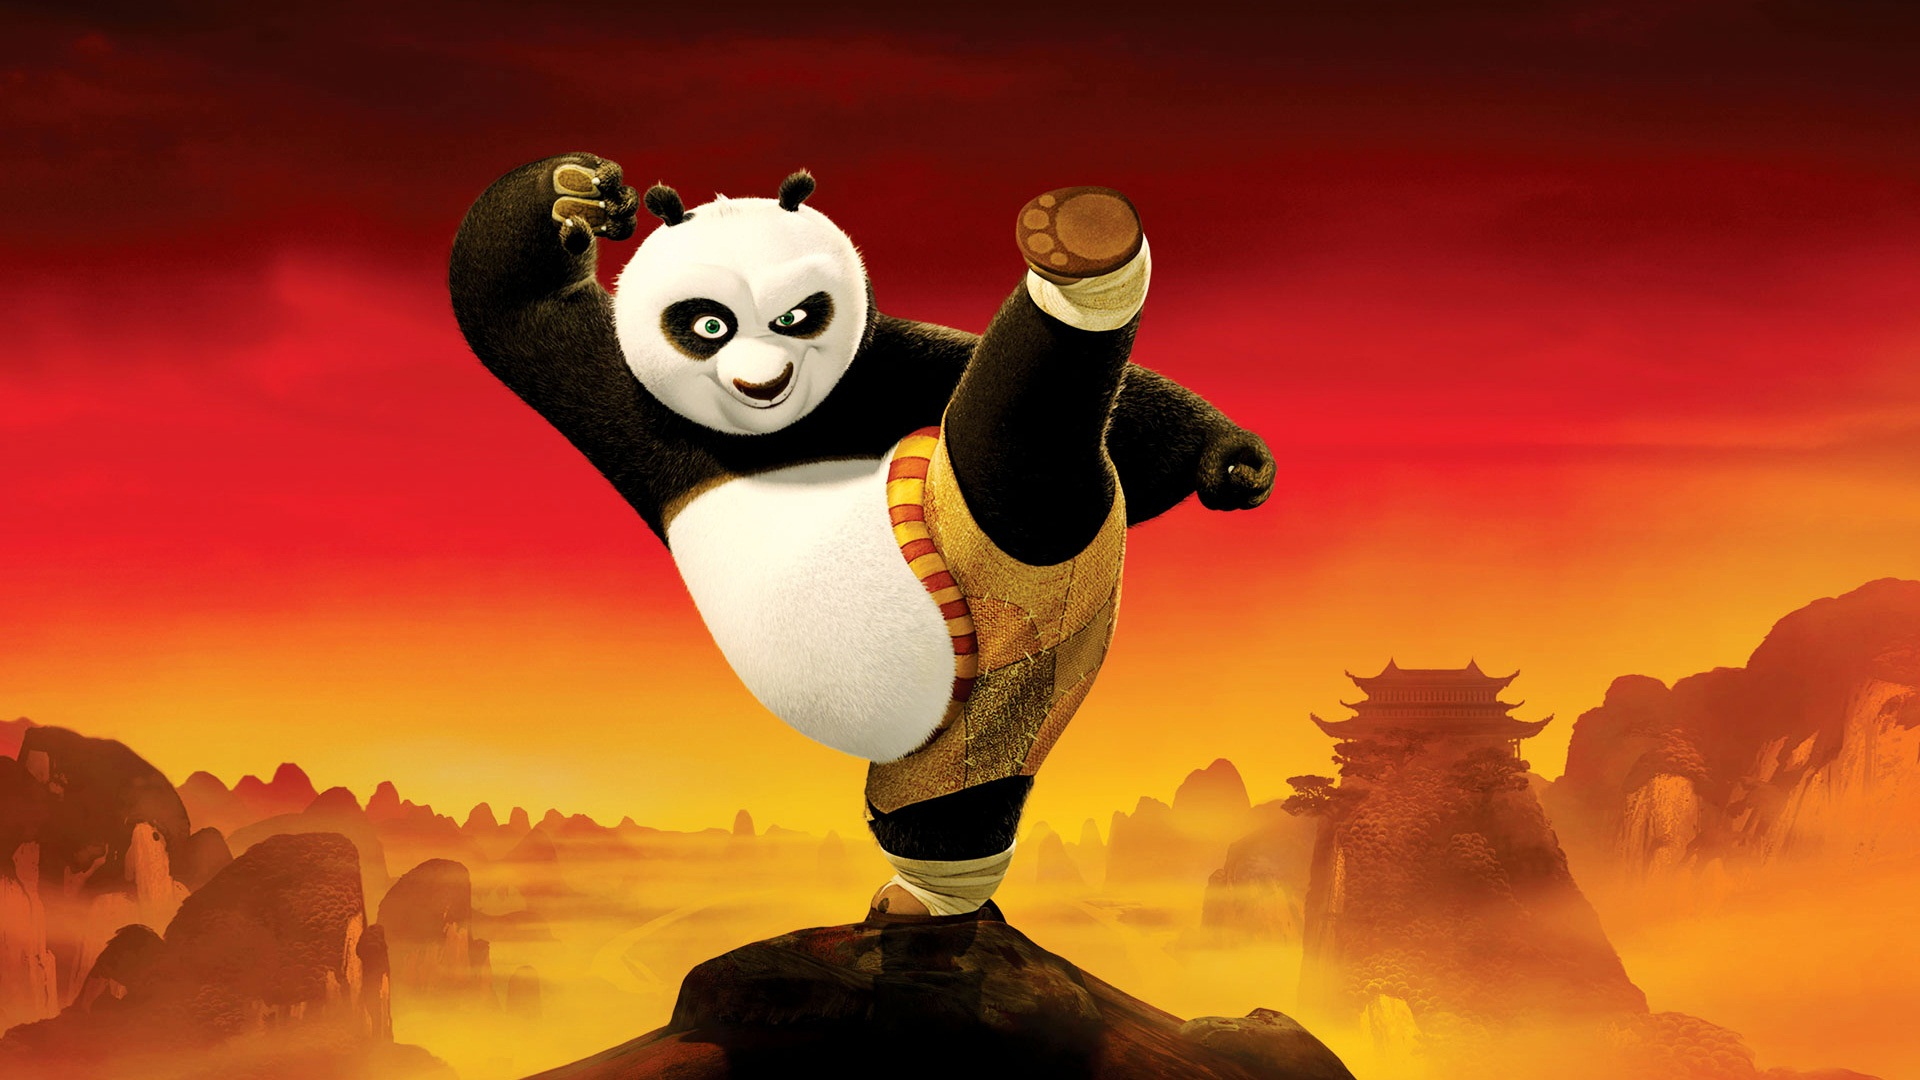 Kung Fu Panda HD Wallpapers Free Download